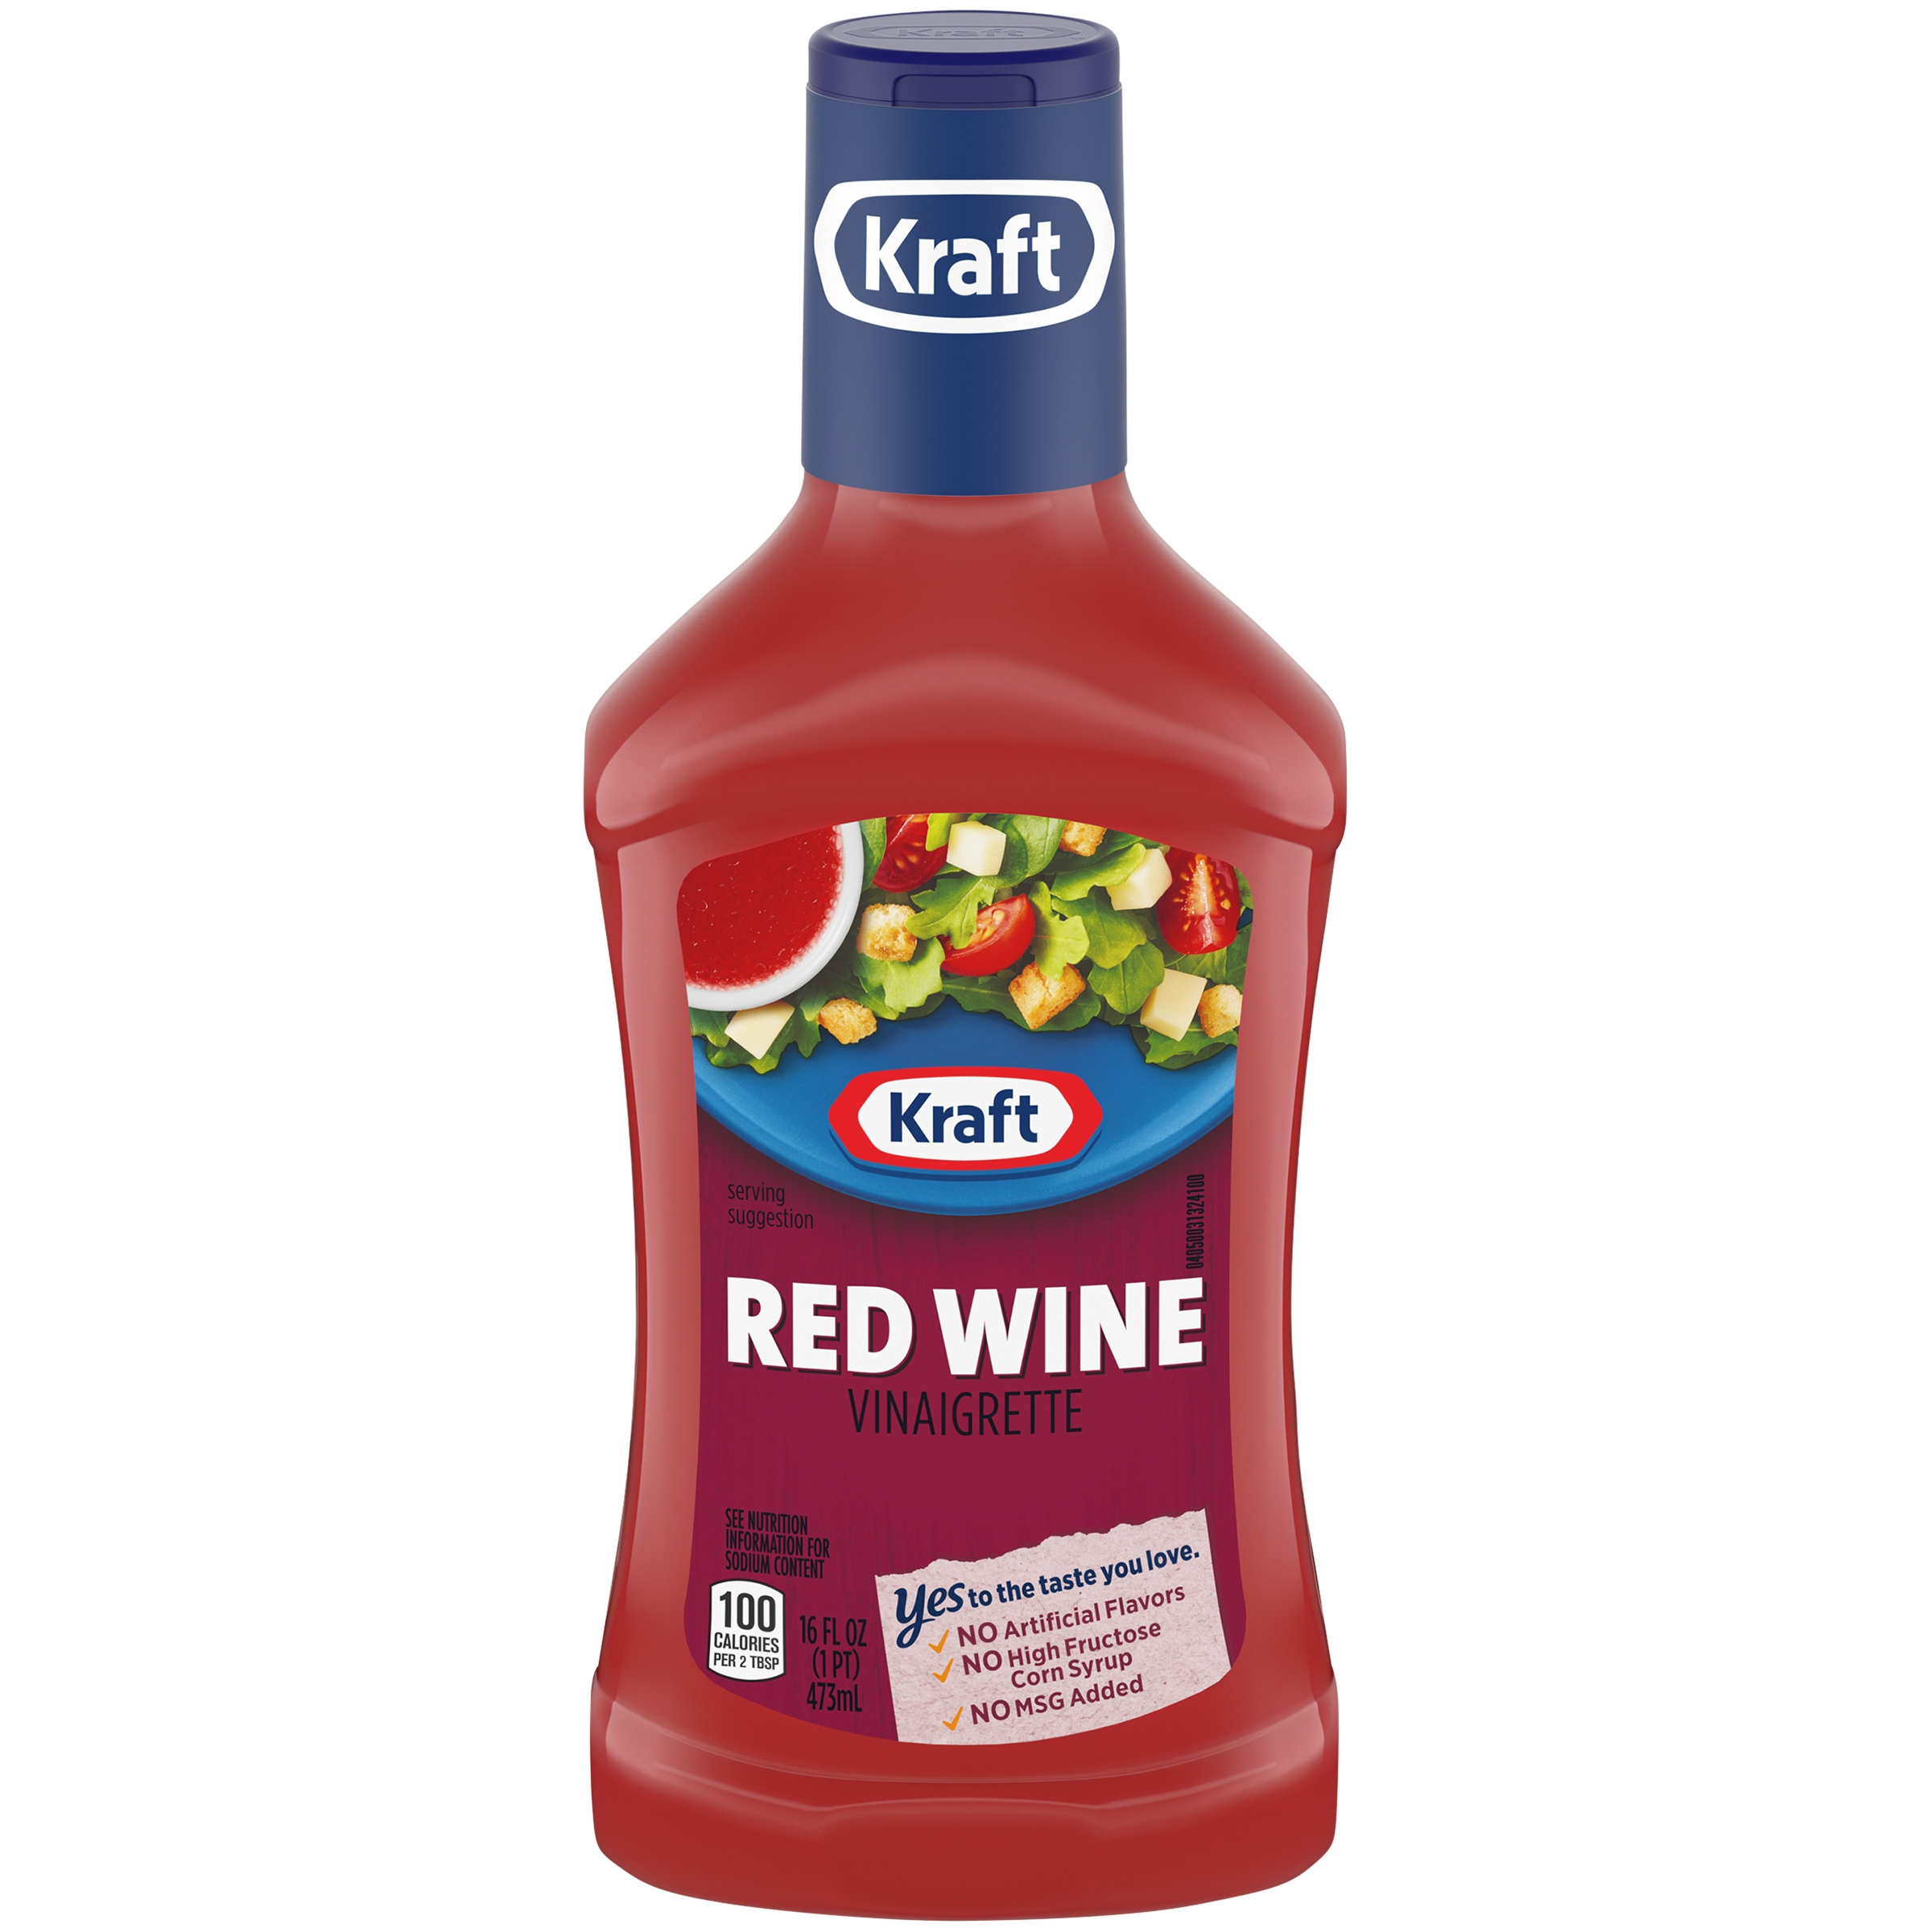 Kraft Red Wine Vinaigrette Dressing 16 fl. oz. Bottle